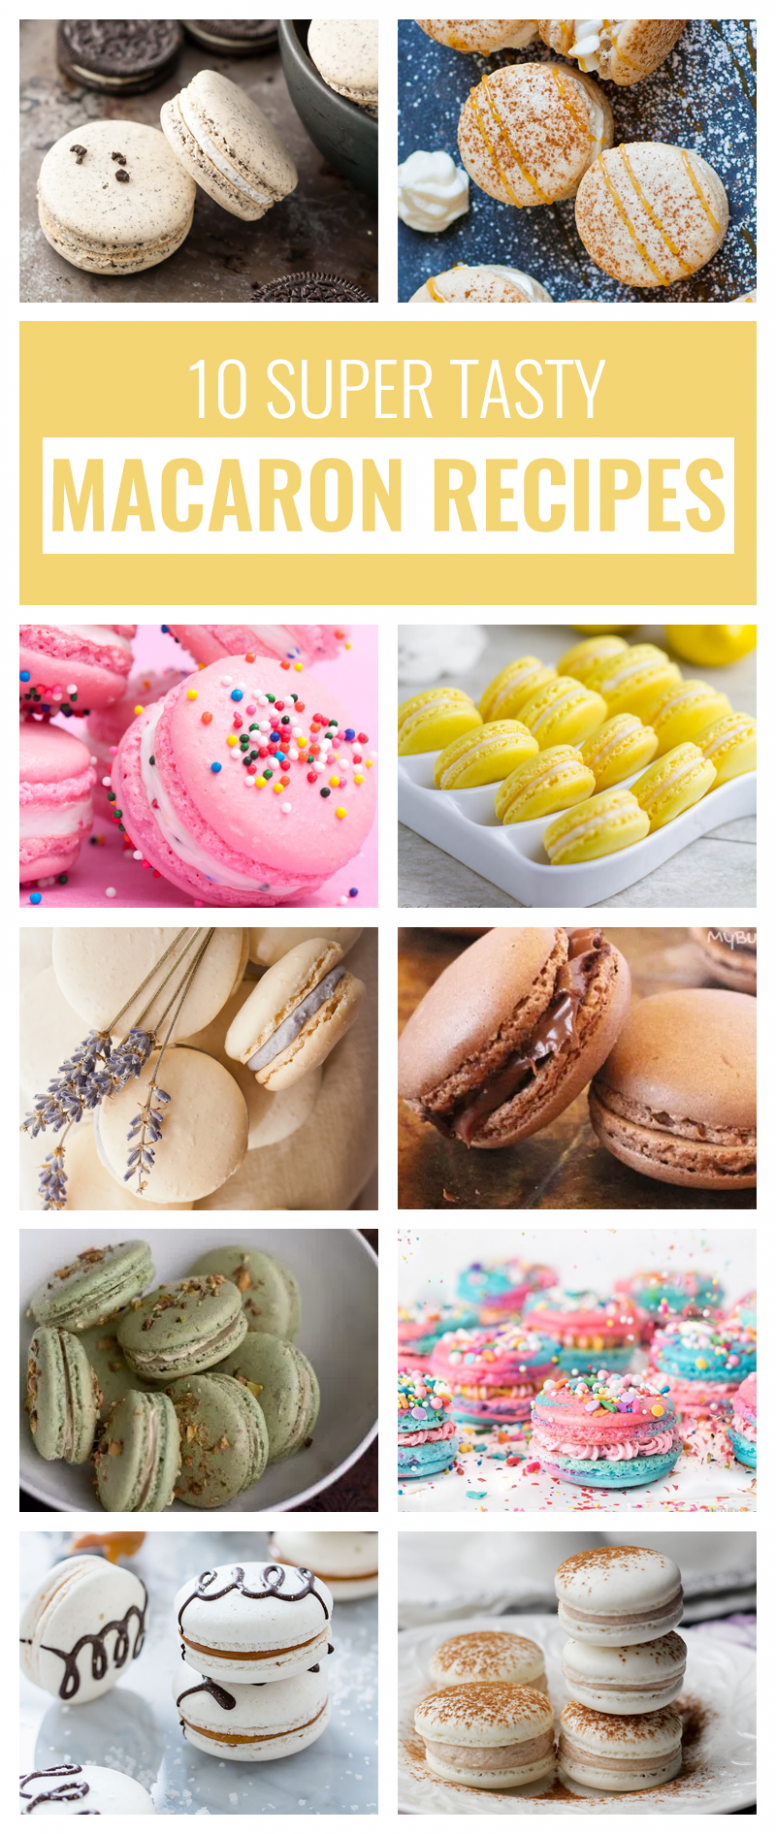 10 Super Tasty Macaron Recipes on Pinterest - delicious dessert ..